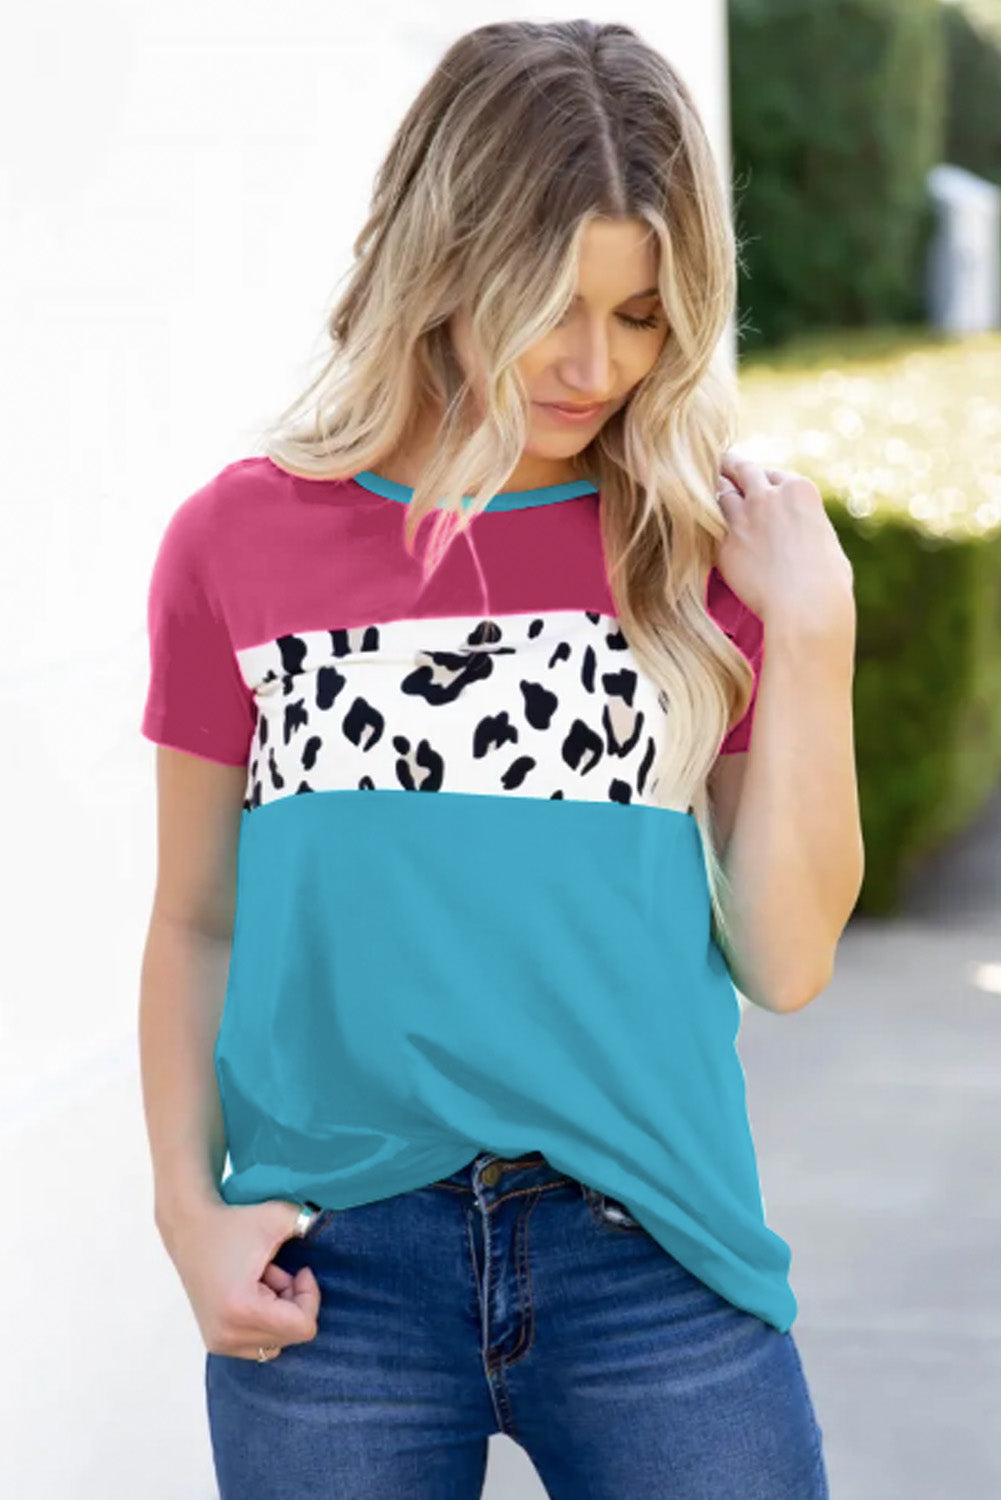 Rose Color Block T-shirt Tops & Tees Discount Designer Fashion Clothes Shoes Bags Women Men Kids Children Black Owned Business